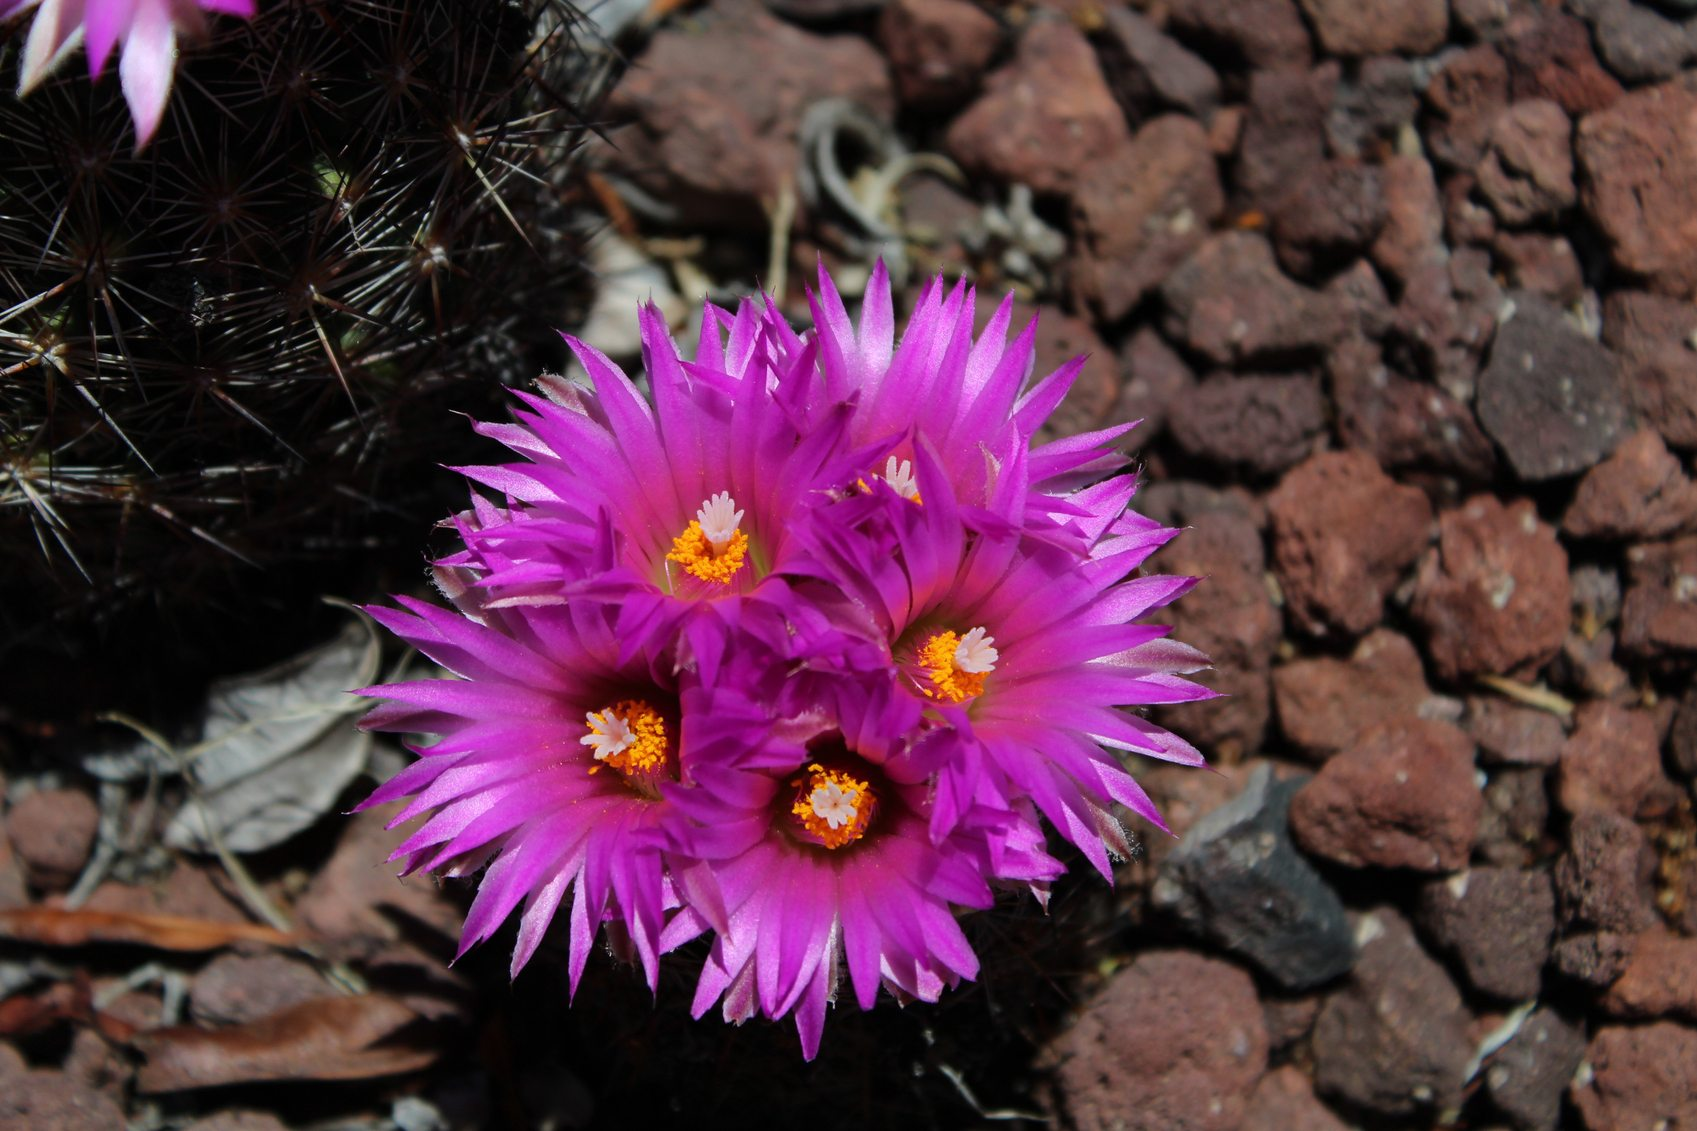 Growing Cactus In Cold Climates